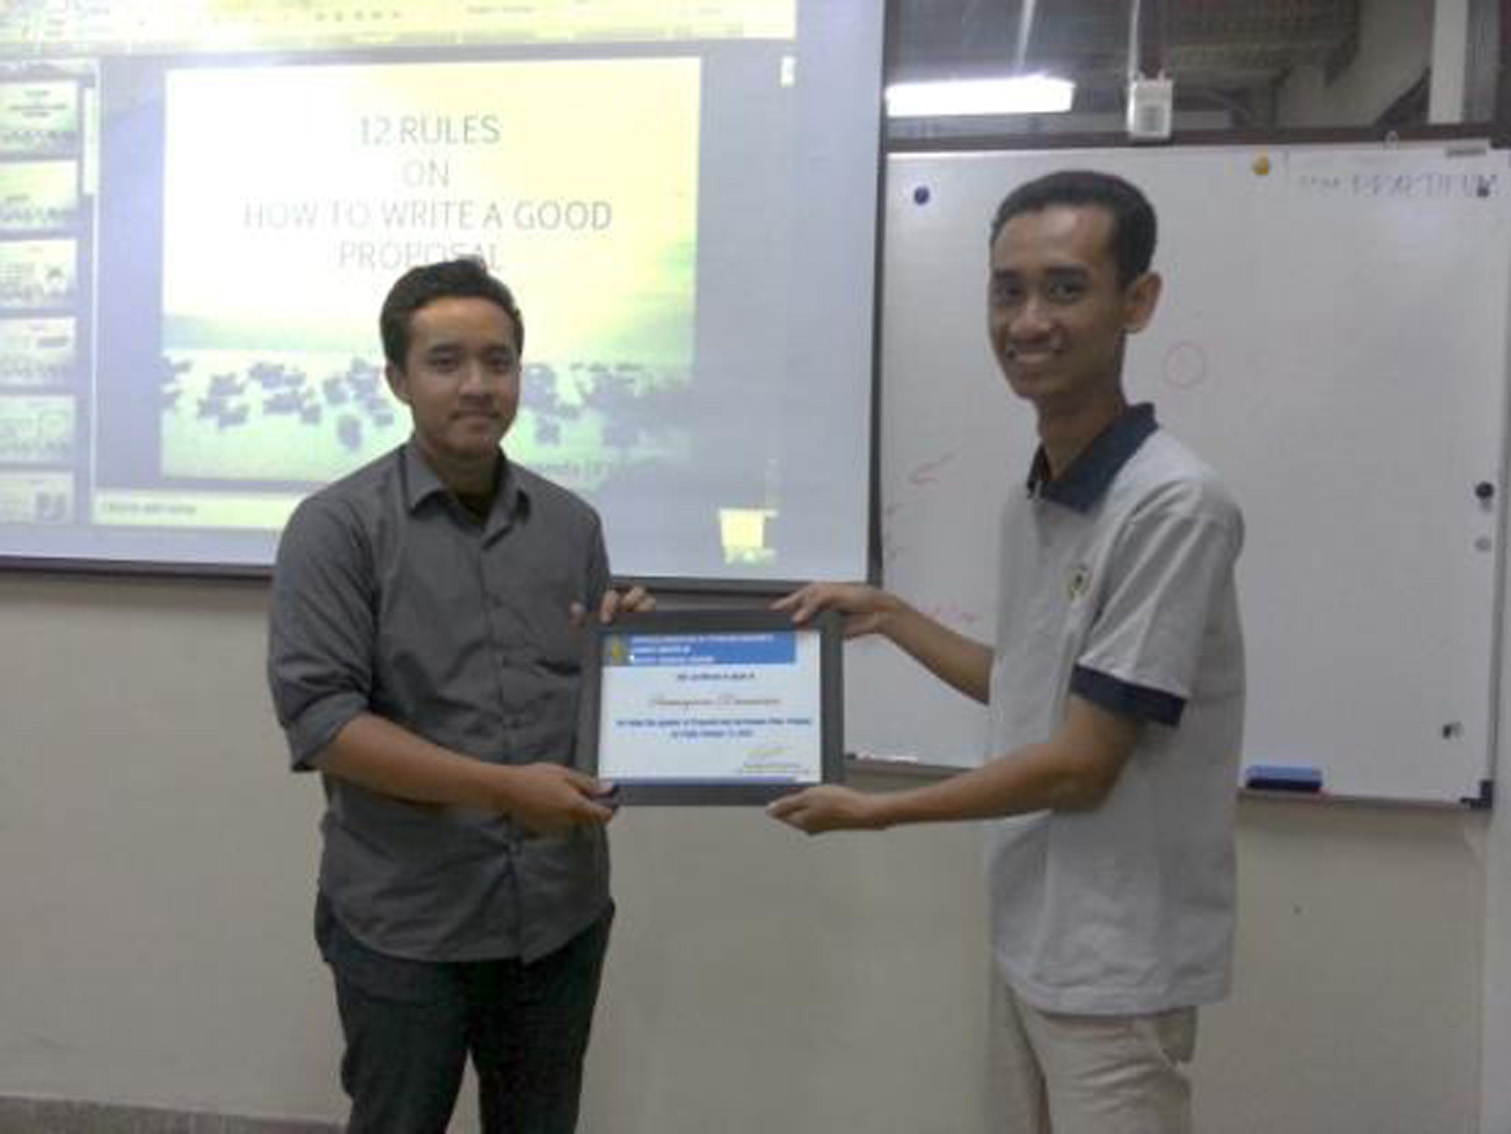 SawungronoDewawisesa (Left) was given a certificate also from IwanSetiawan as the project officer (right).